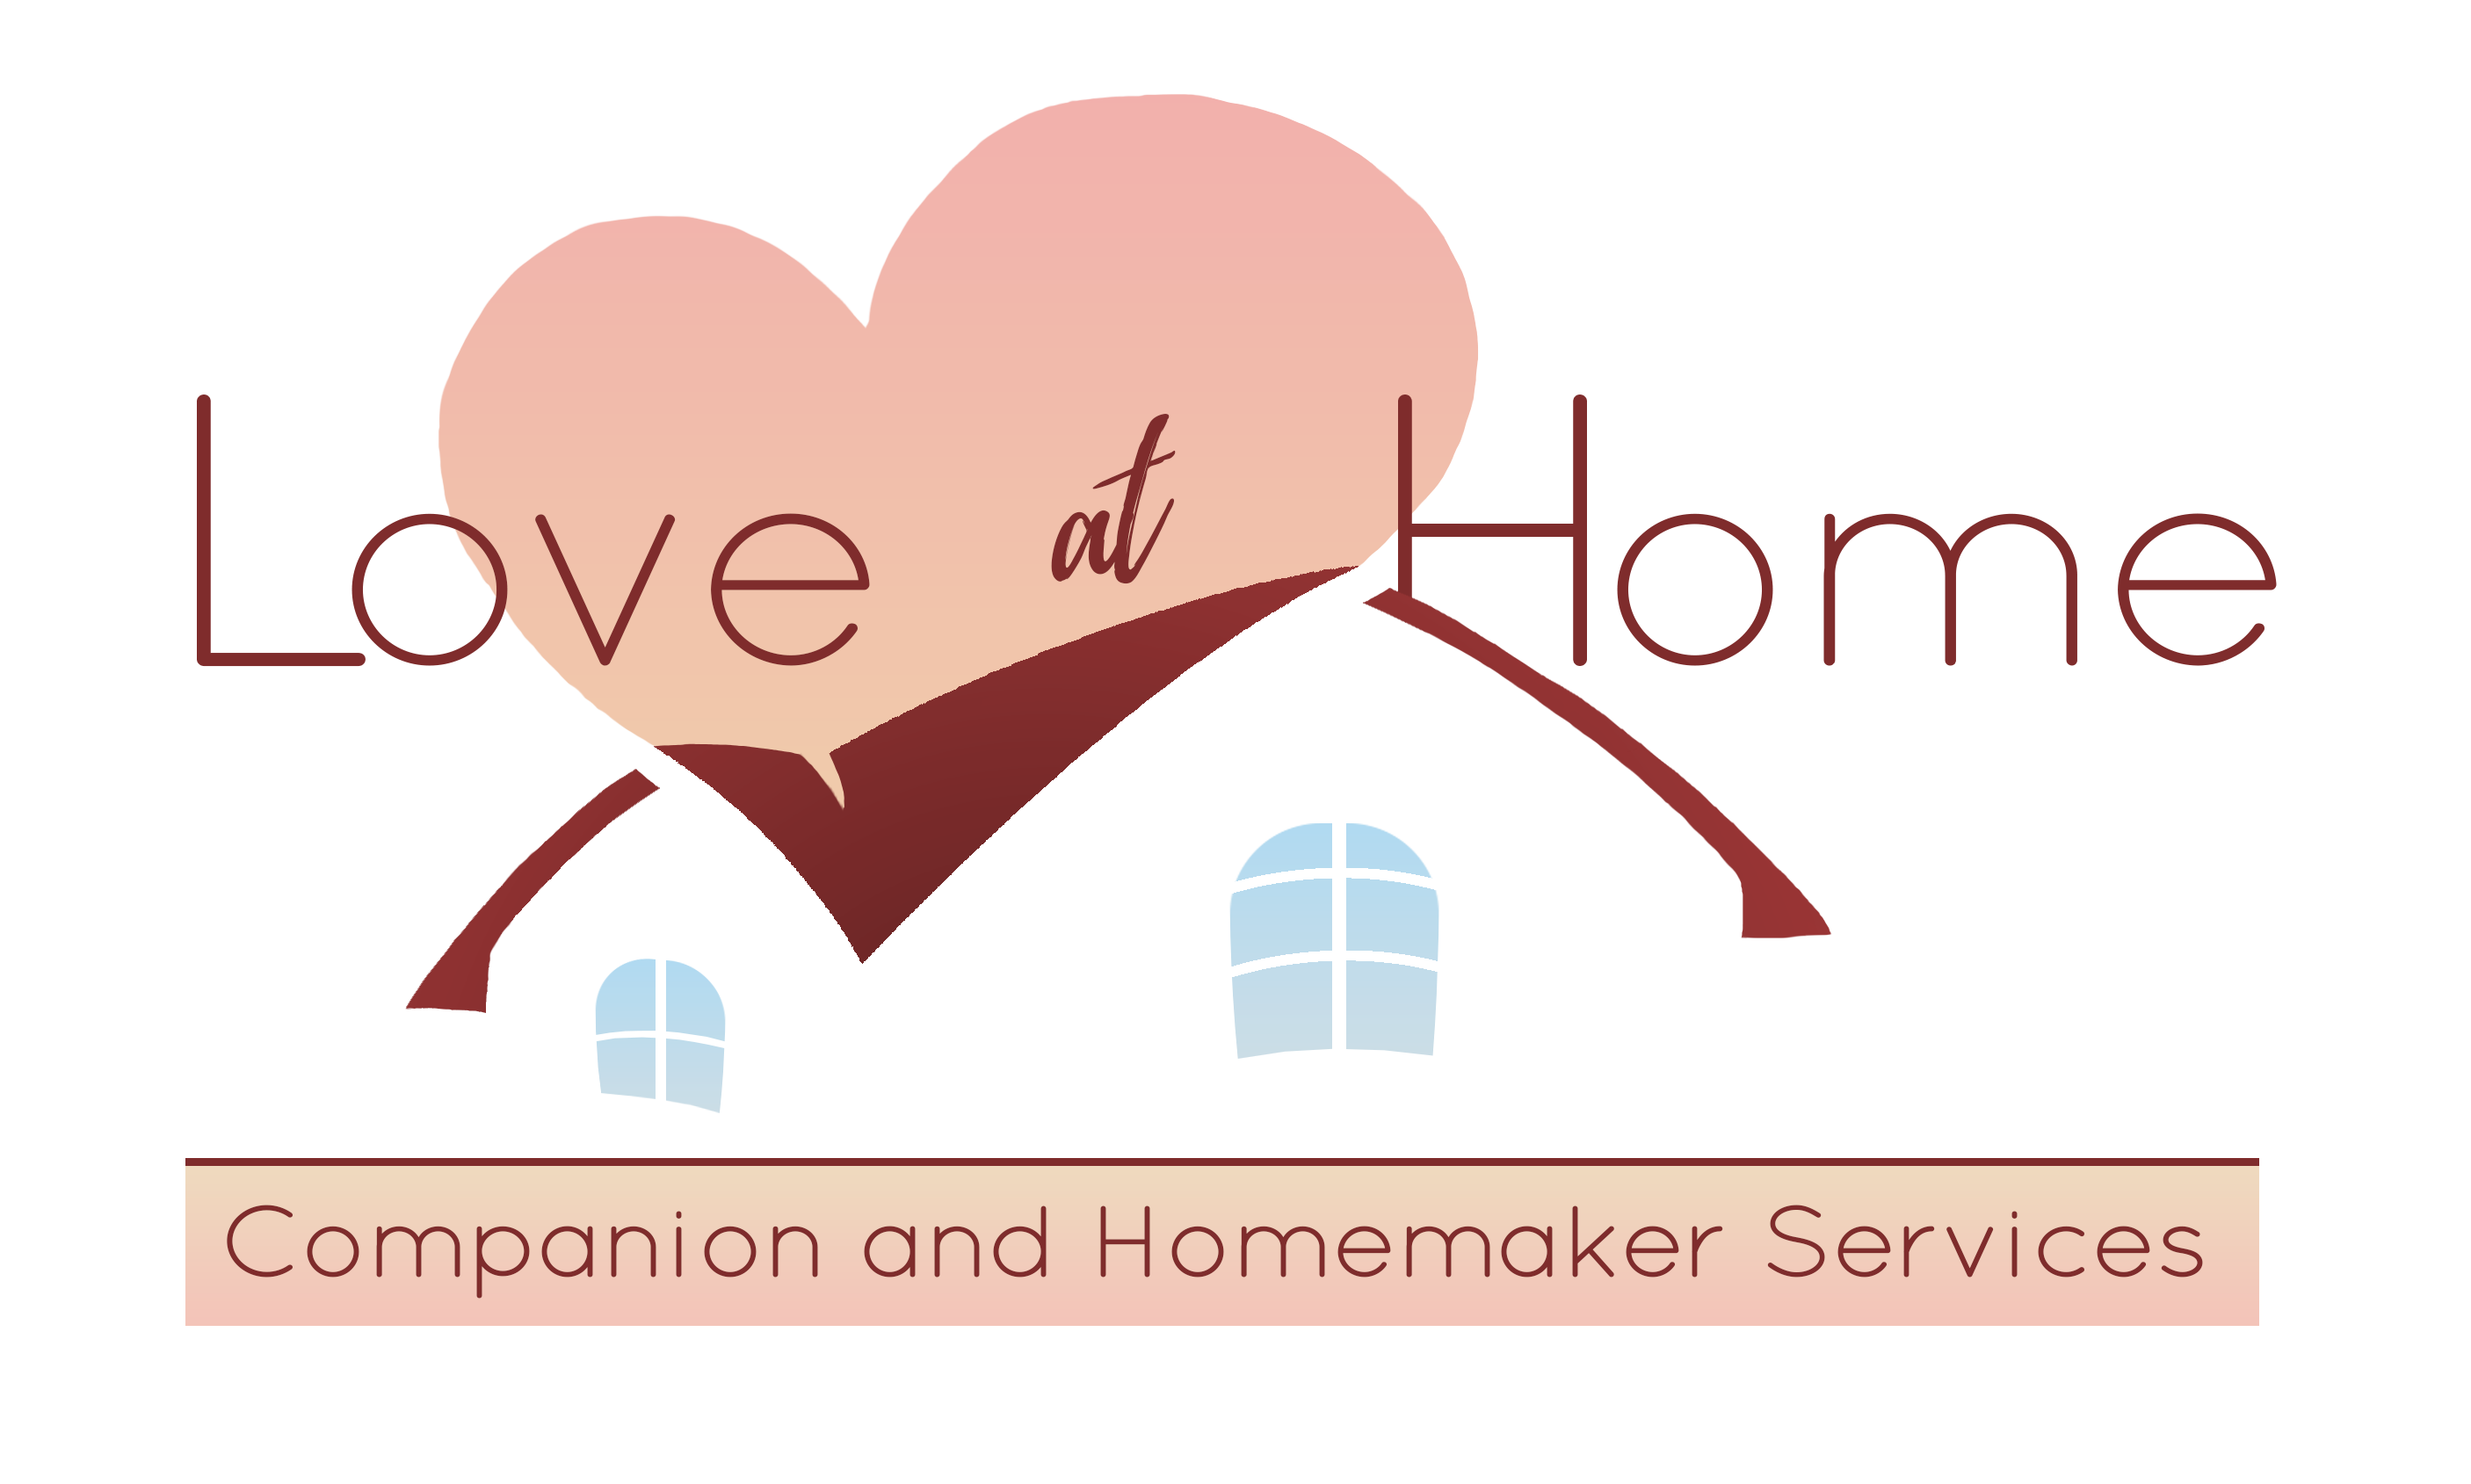 Homemaker and Companion Services